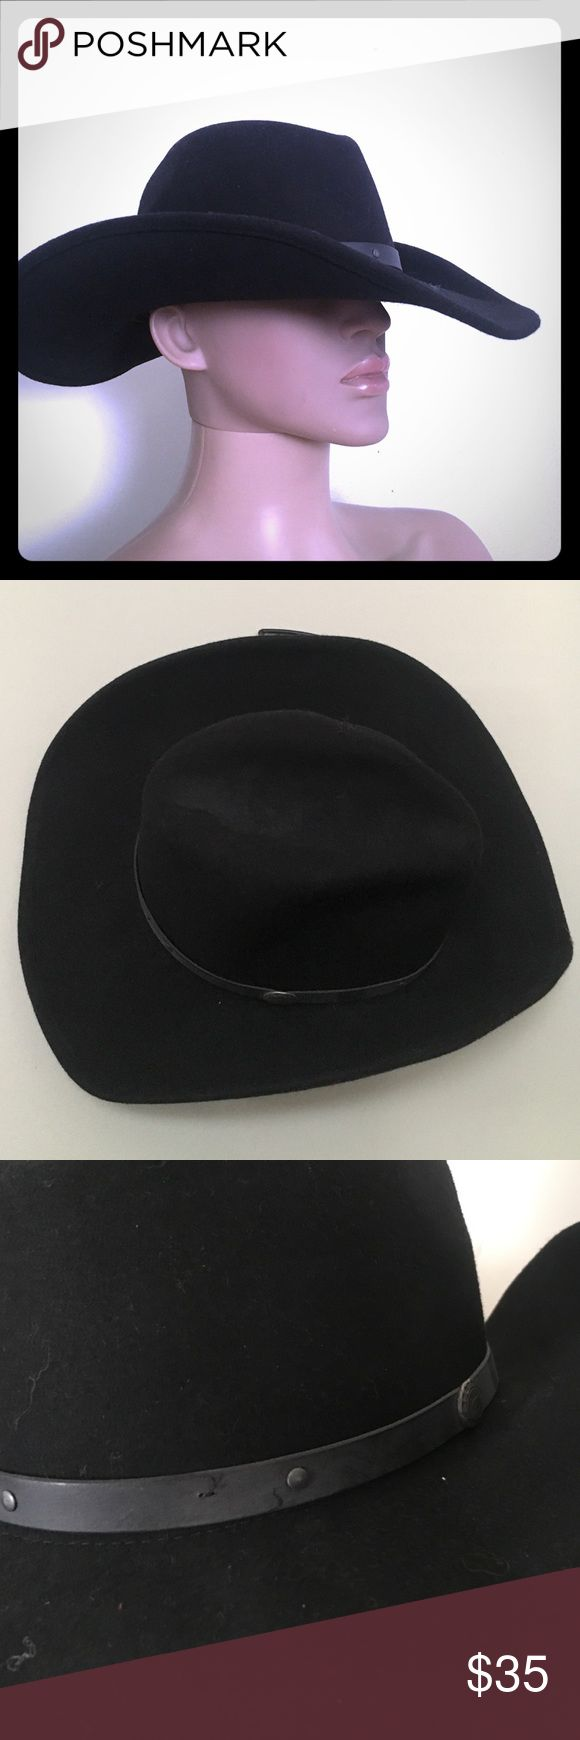 Bradley crushable water repellent cowboy hat LARGE Excellent condition and has never been worn but has been stored. Are light signs of wear only from storage but the hat is absolutely stunning! This is a unisex hat and can be worn on either a man or a woman. It is a size large with the style number WPL 4384. Made in the USA and 100% wool. Leisure felt as seen in picture for please view it with posh Mark's new image close up view.Water repellent & crushable to fit your style! Band has silver…